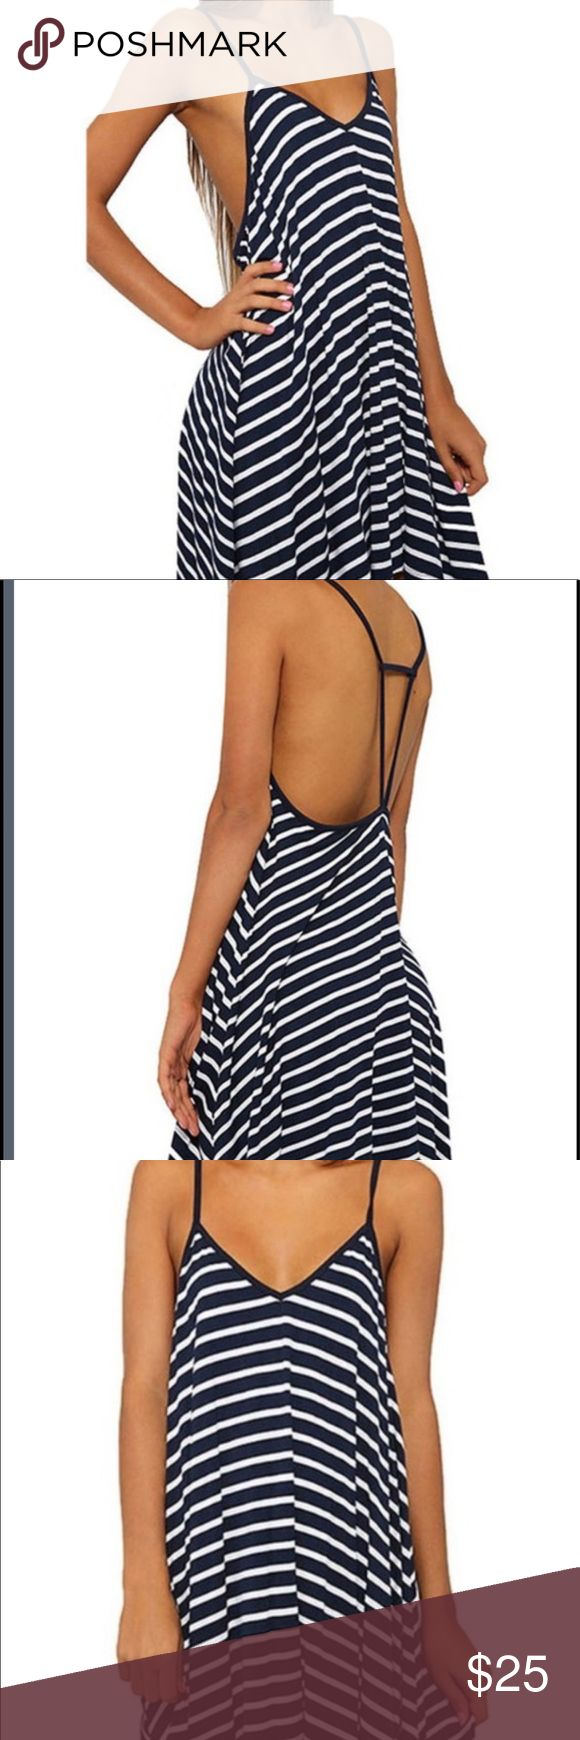 """Summer Beach Dress NWT This is an easy knit slipover  dress in XL. Black and white stripes. Slip it on over a bathing suit , so soft you could sleep in it, or just wear around the house. It's 31"""" from shoulder to hem.🎀🎀 Boutique Dresses Mini"""